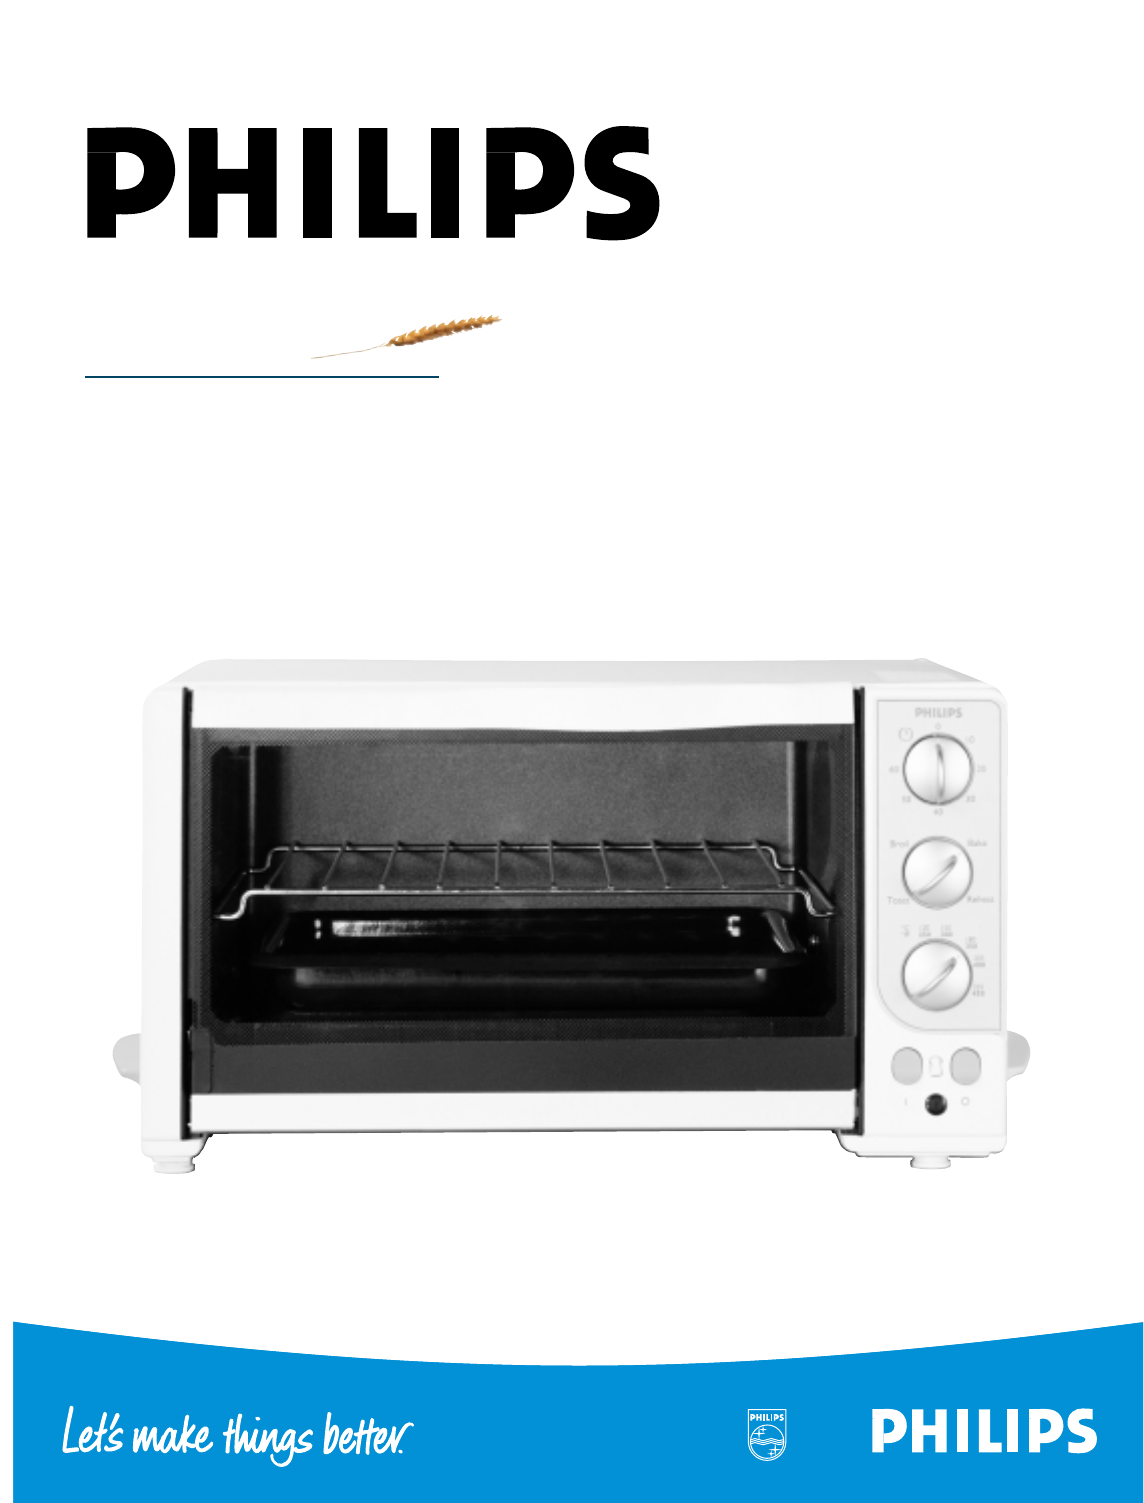 philips oven kb 9100 user guide manualsonline com rh kitchen manualsonline com Philips Electronics Manuals Philips Universal Remote User Manual